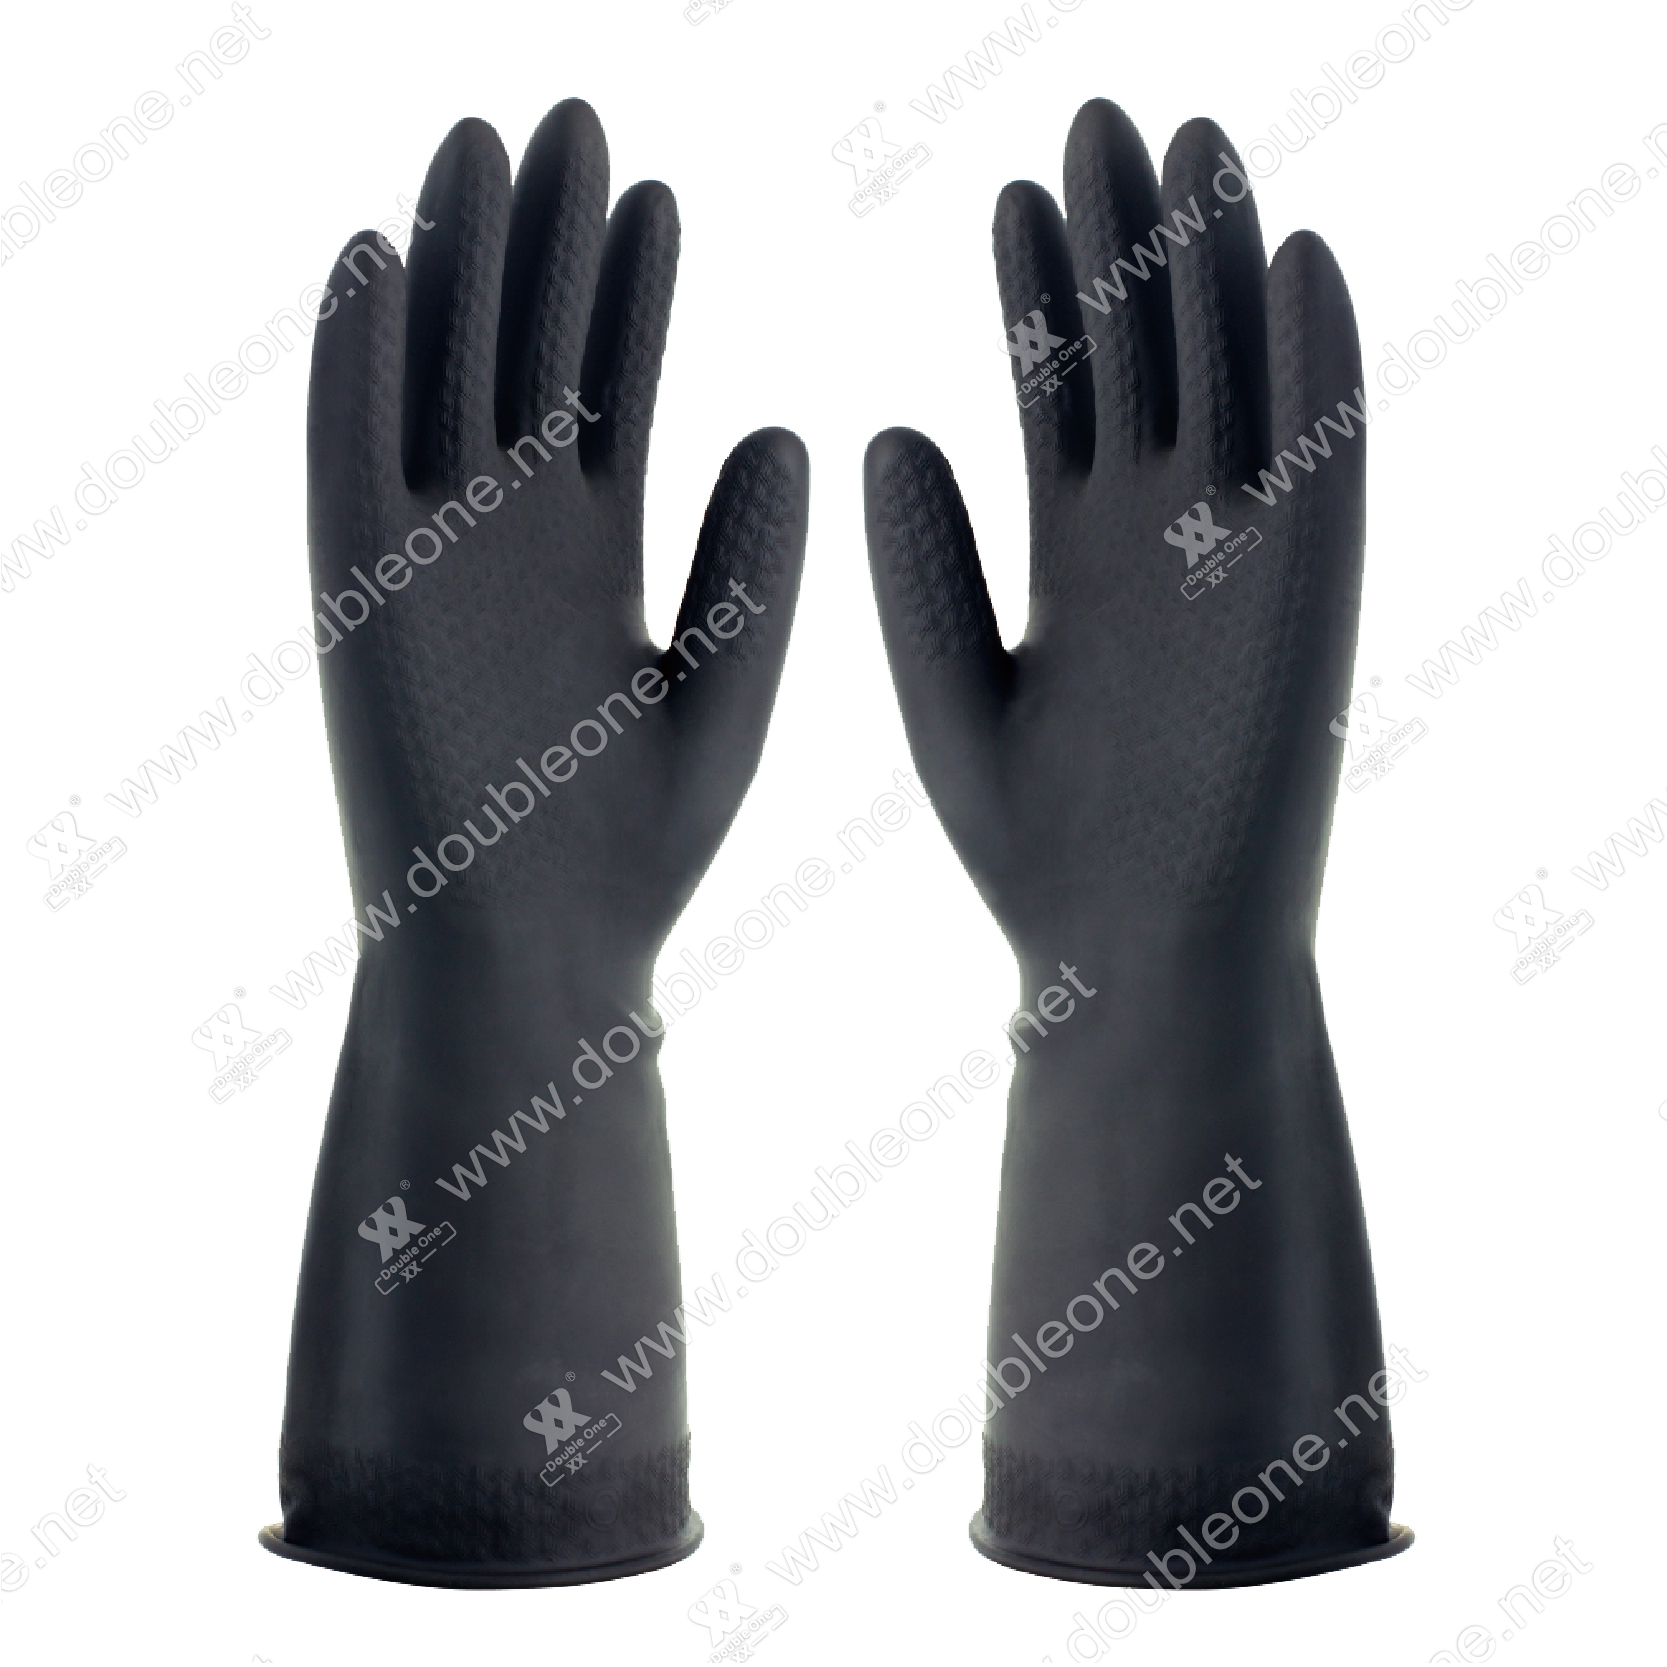 Double One black latex industrial gloves